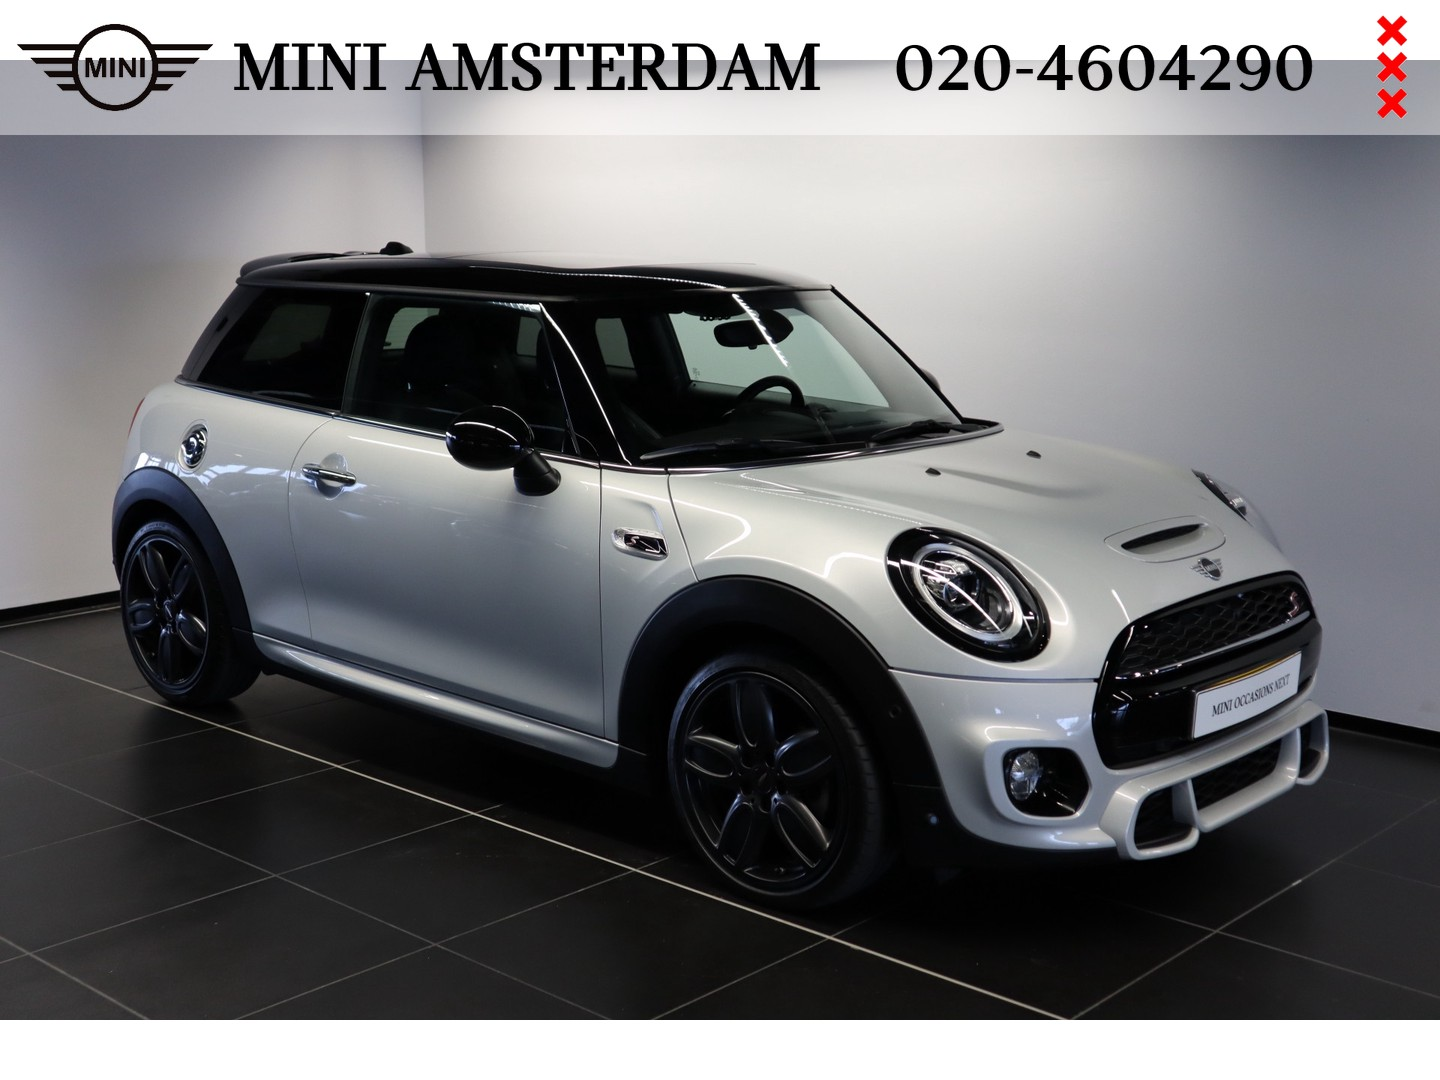 Mini 3-deurs 2.0 cooper s knightsbridge edition